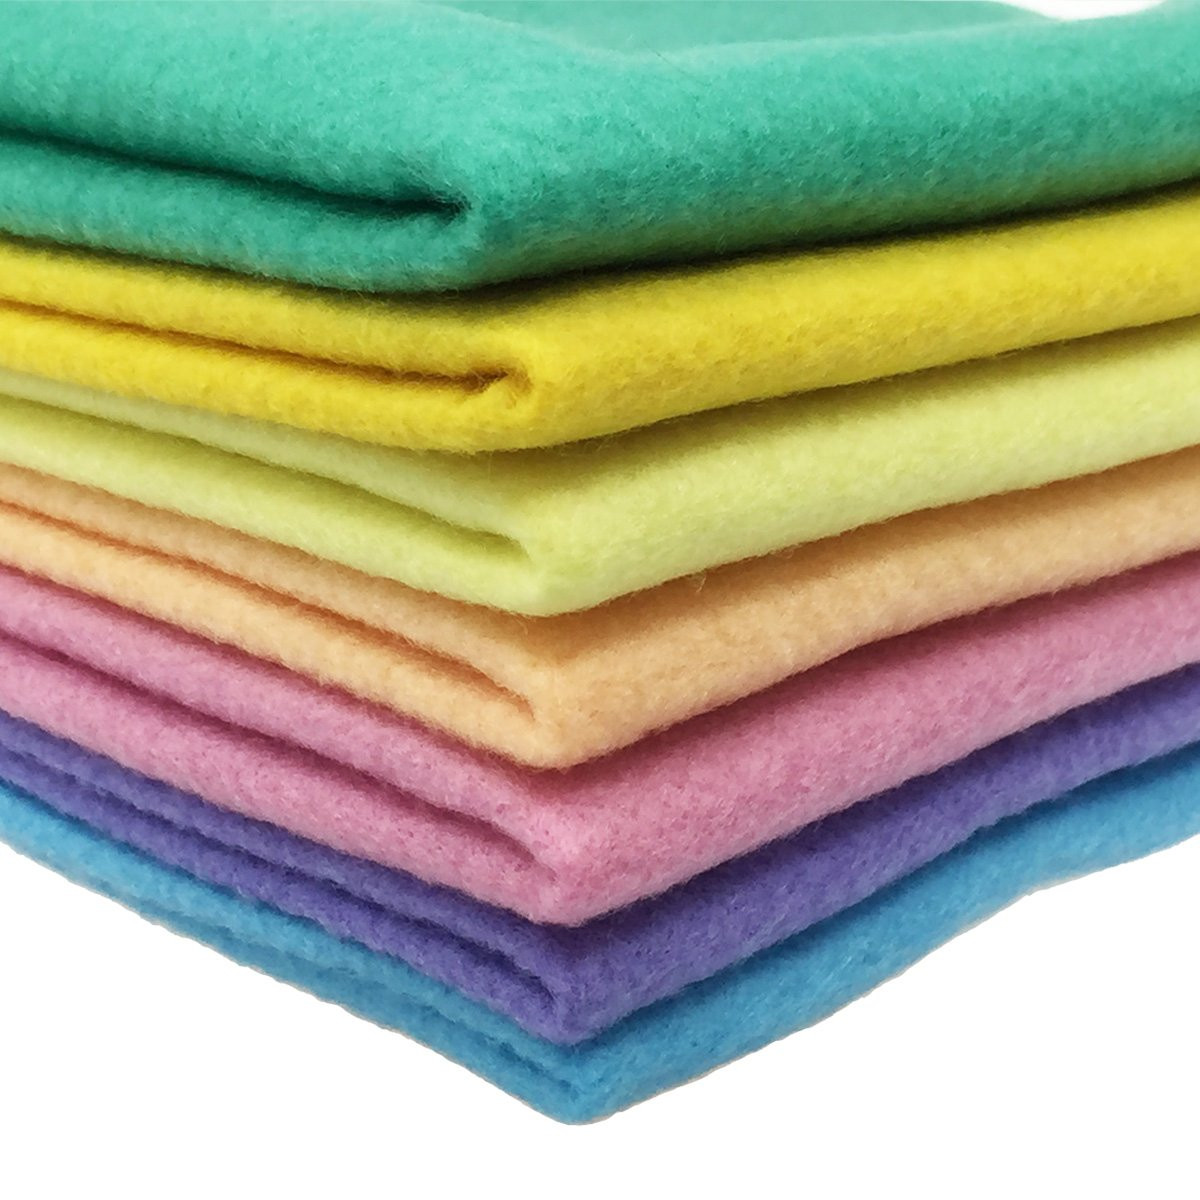 flic-flac 28pcs 12 x 8 inches 1.4mm Thick Soft Felt Fabric Sheet Assorted Color Felt Pack DIY Craft Sewing Squares Nonwoven Patchwork 30cmx20cm